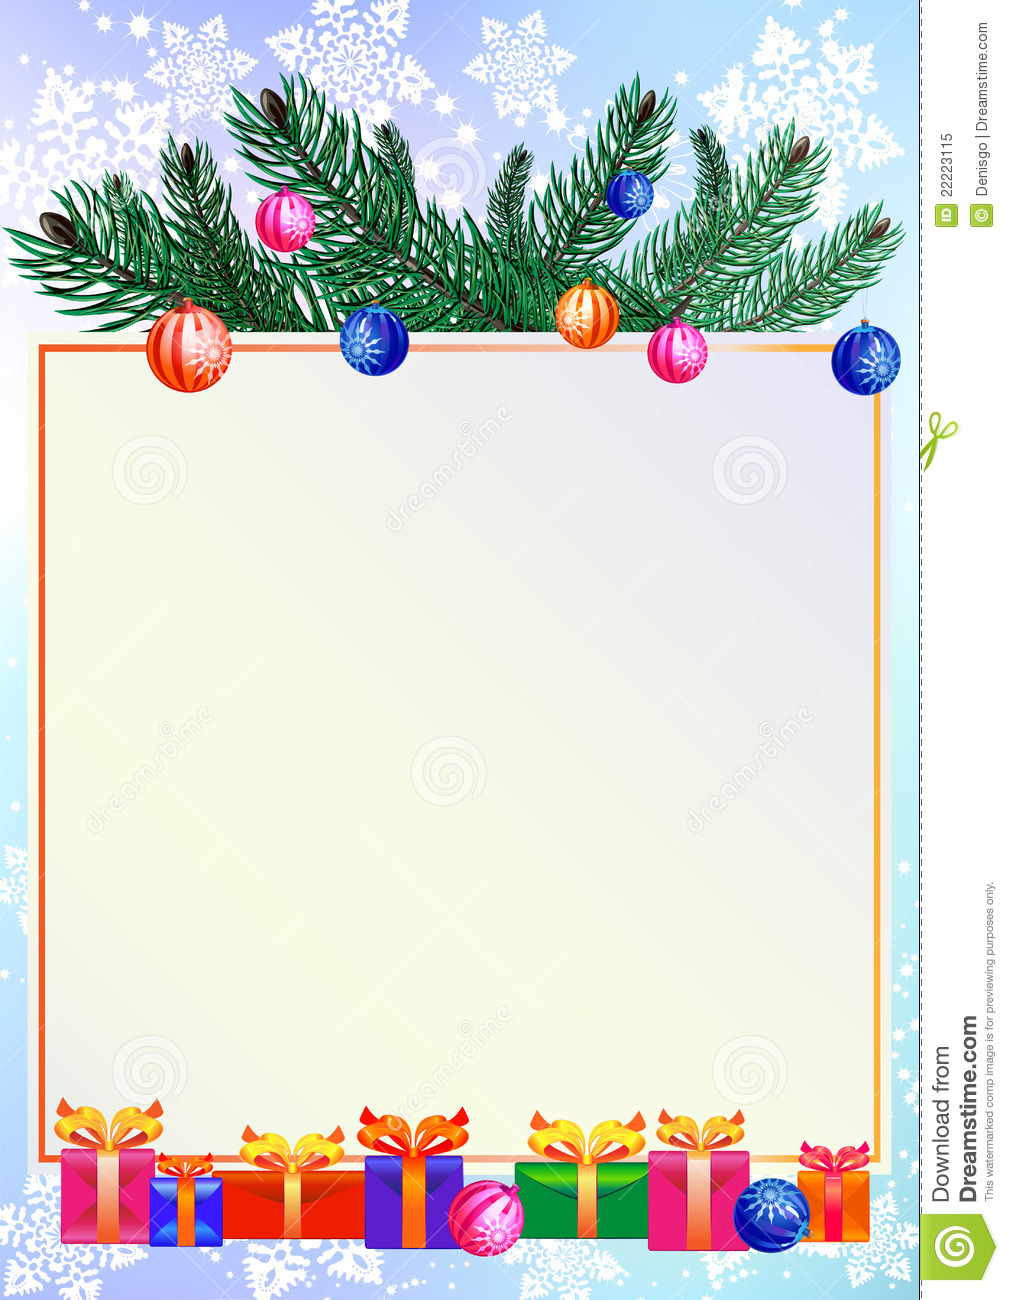 Christmas Background With Gifts And Branch Of Pine Stock